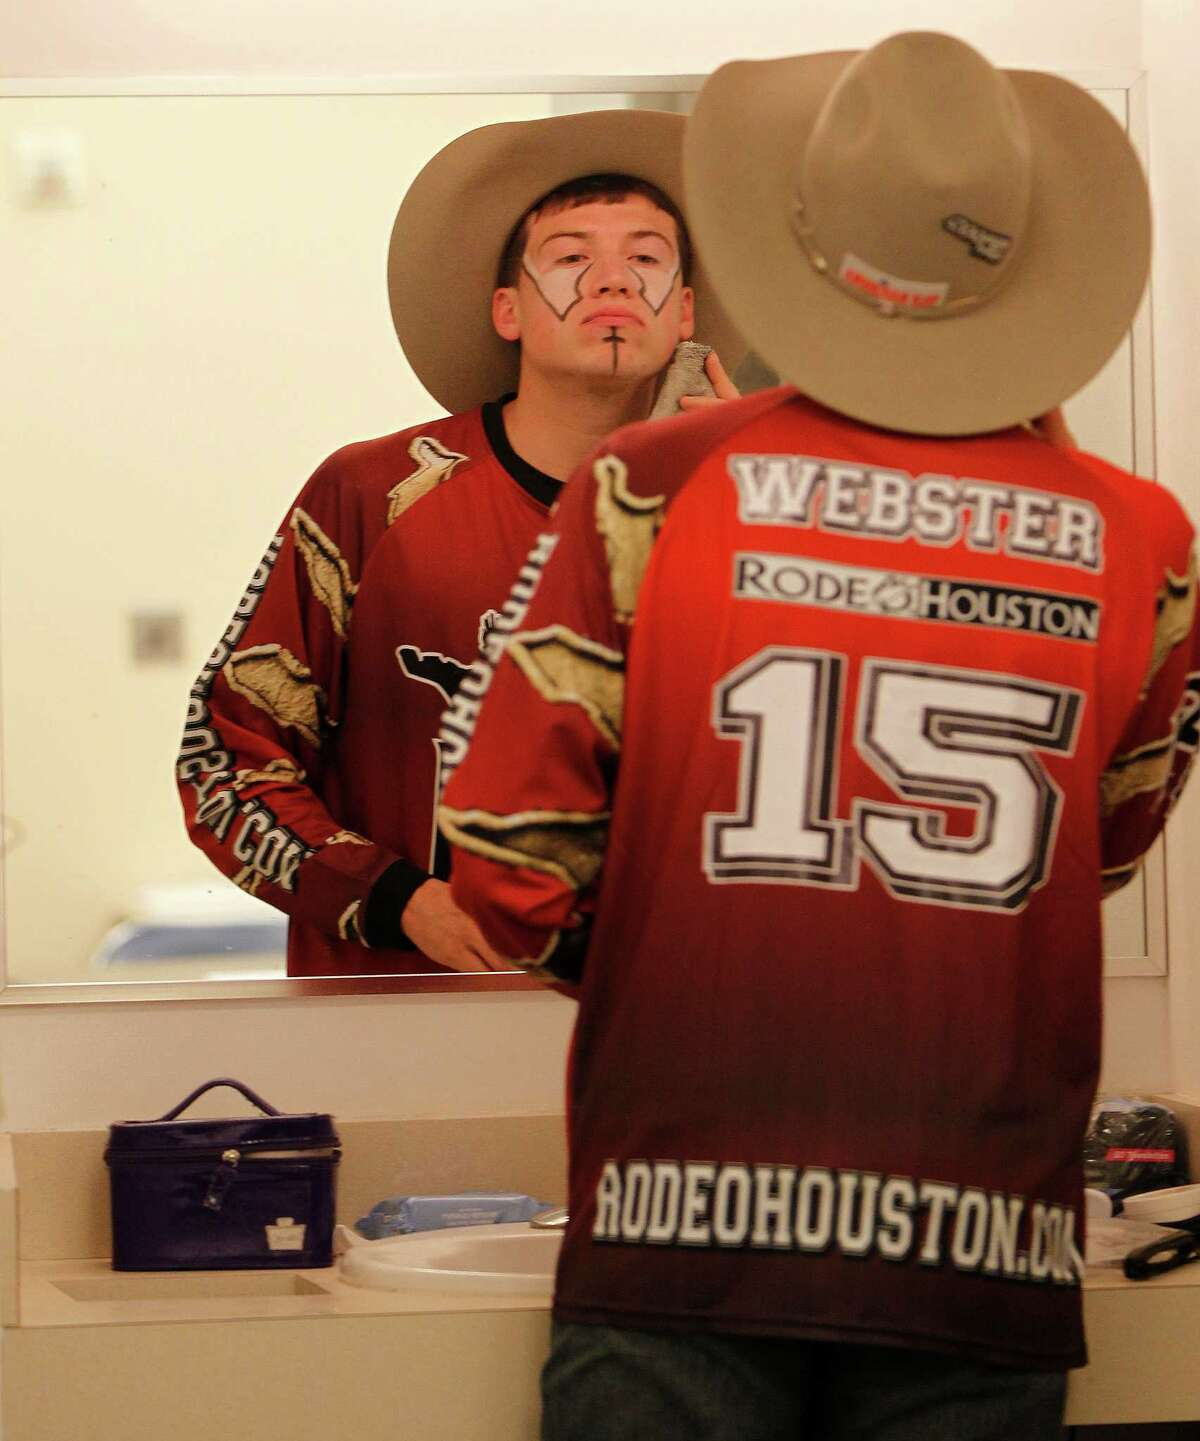 Bullfighter Cody Webster puts on his makeup before the start of the Houston Livestock Show and Rodeo at NRG Stadium, Friday, March 11, 2016.